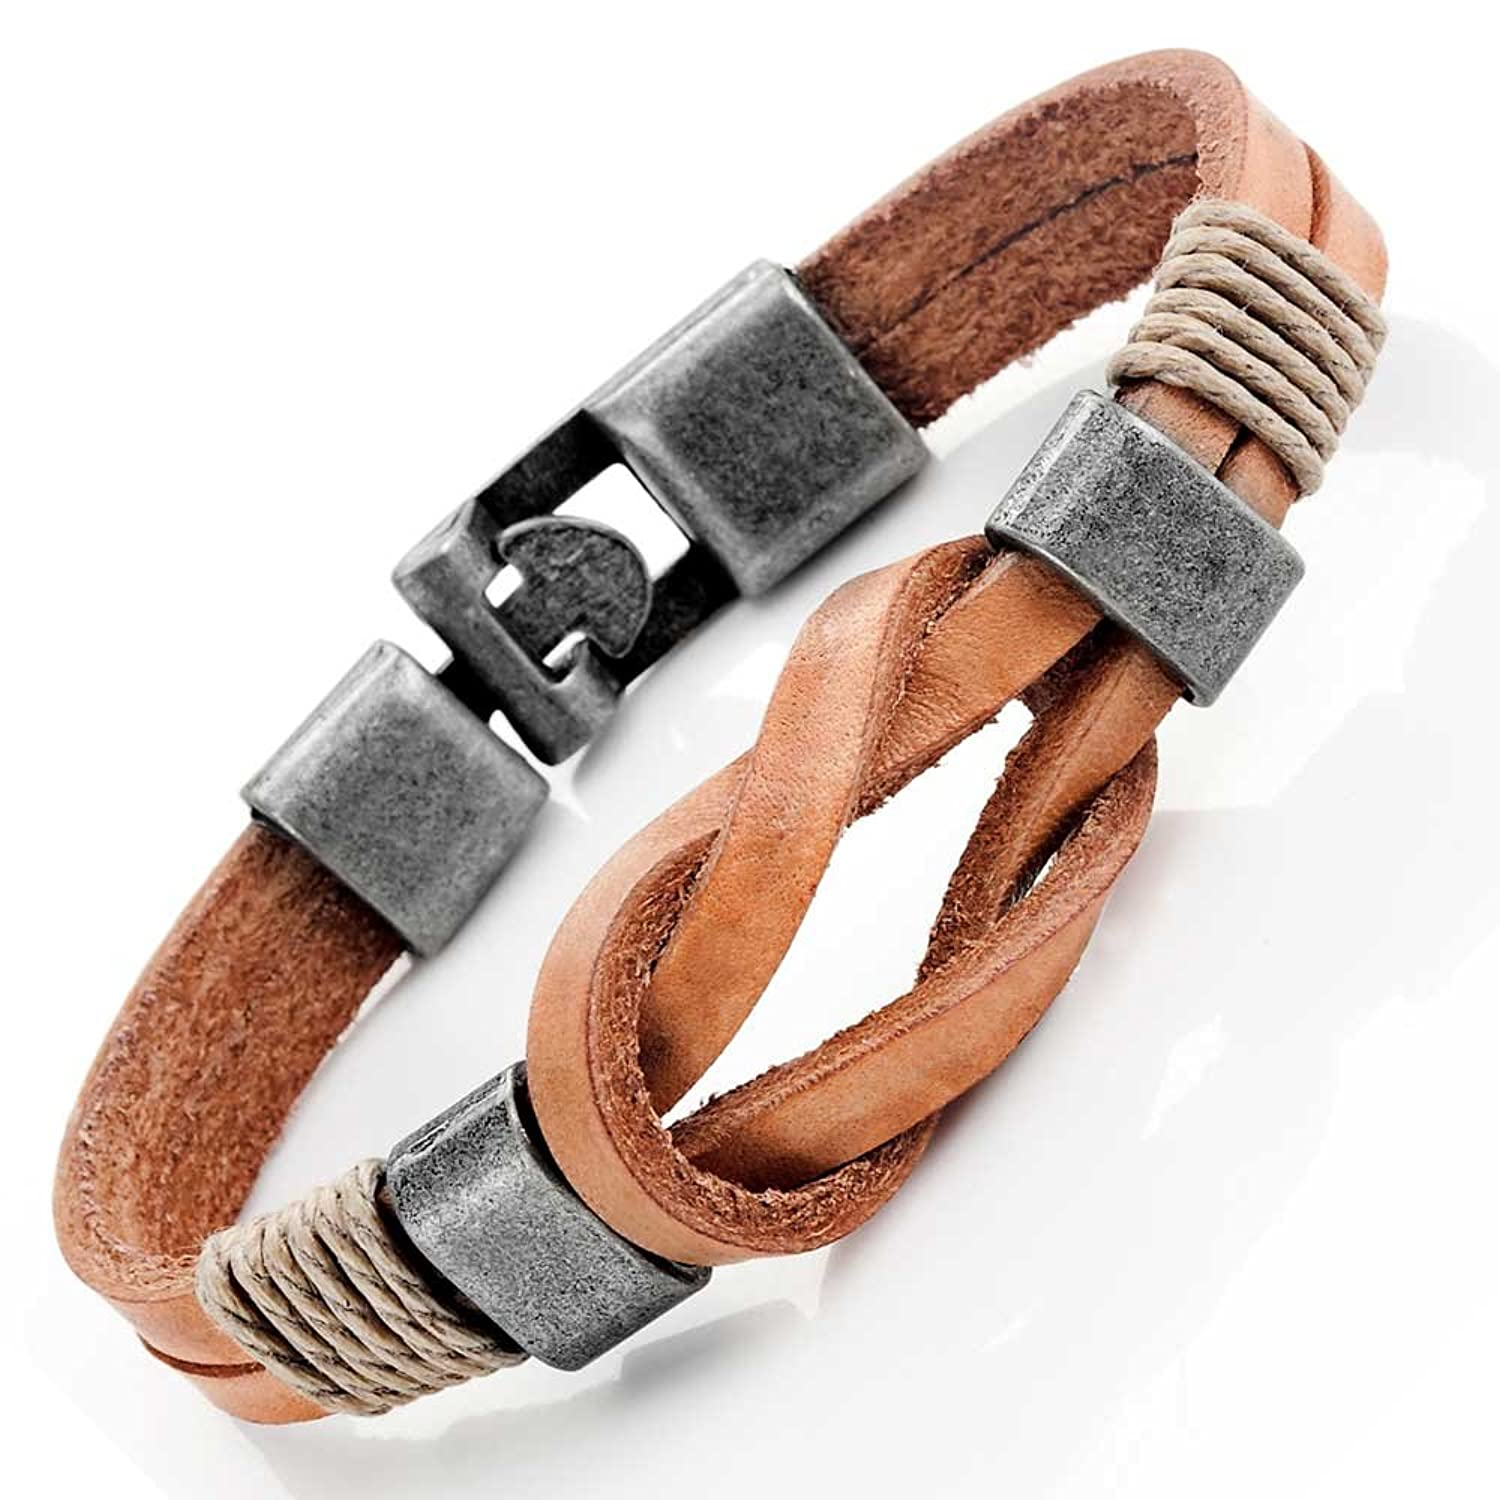 Amazon: Tan Leather Nautical Knot Bracelet For Him And Her, Unisex,  Leather, 8